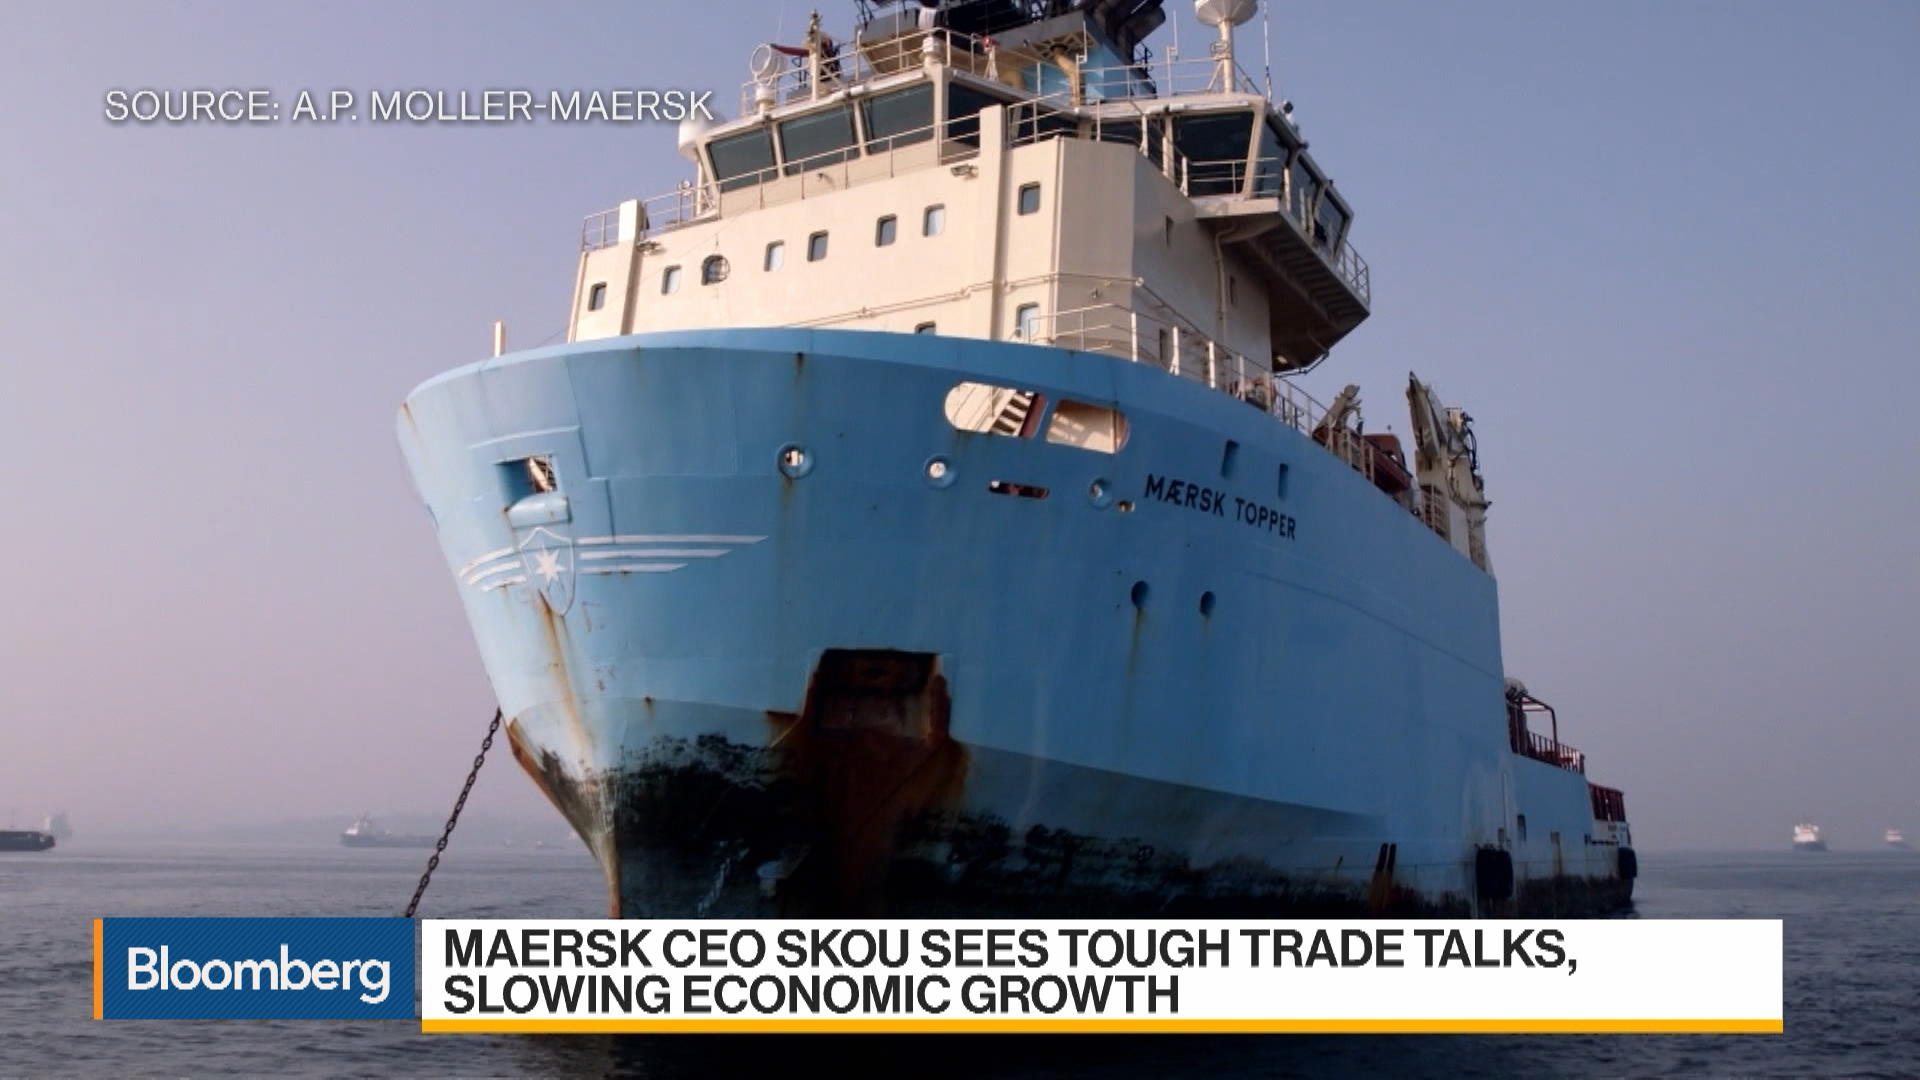 Maersk Expanding Portfolio of Services, COO Toft Says